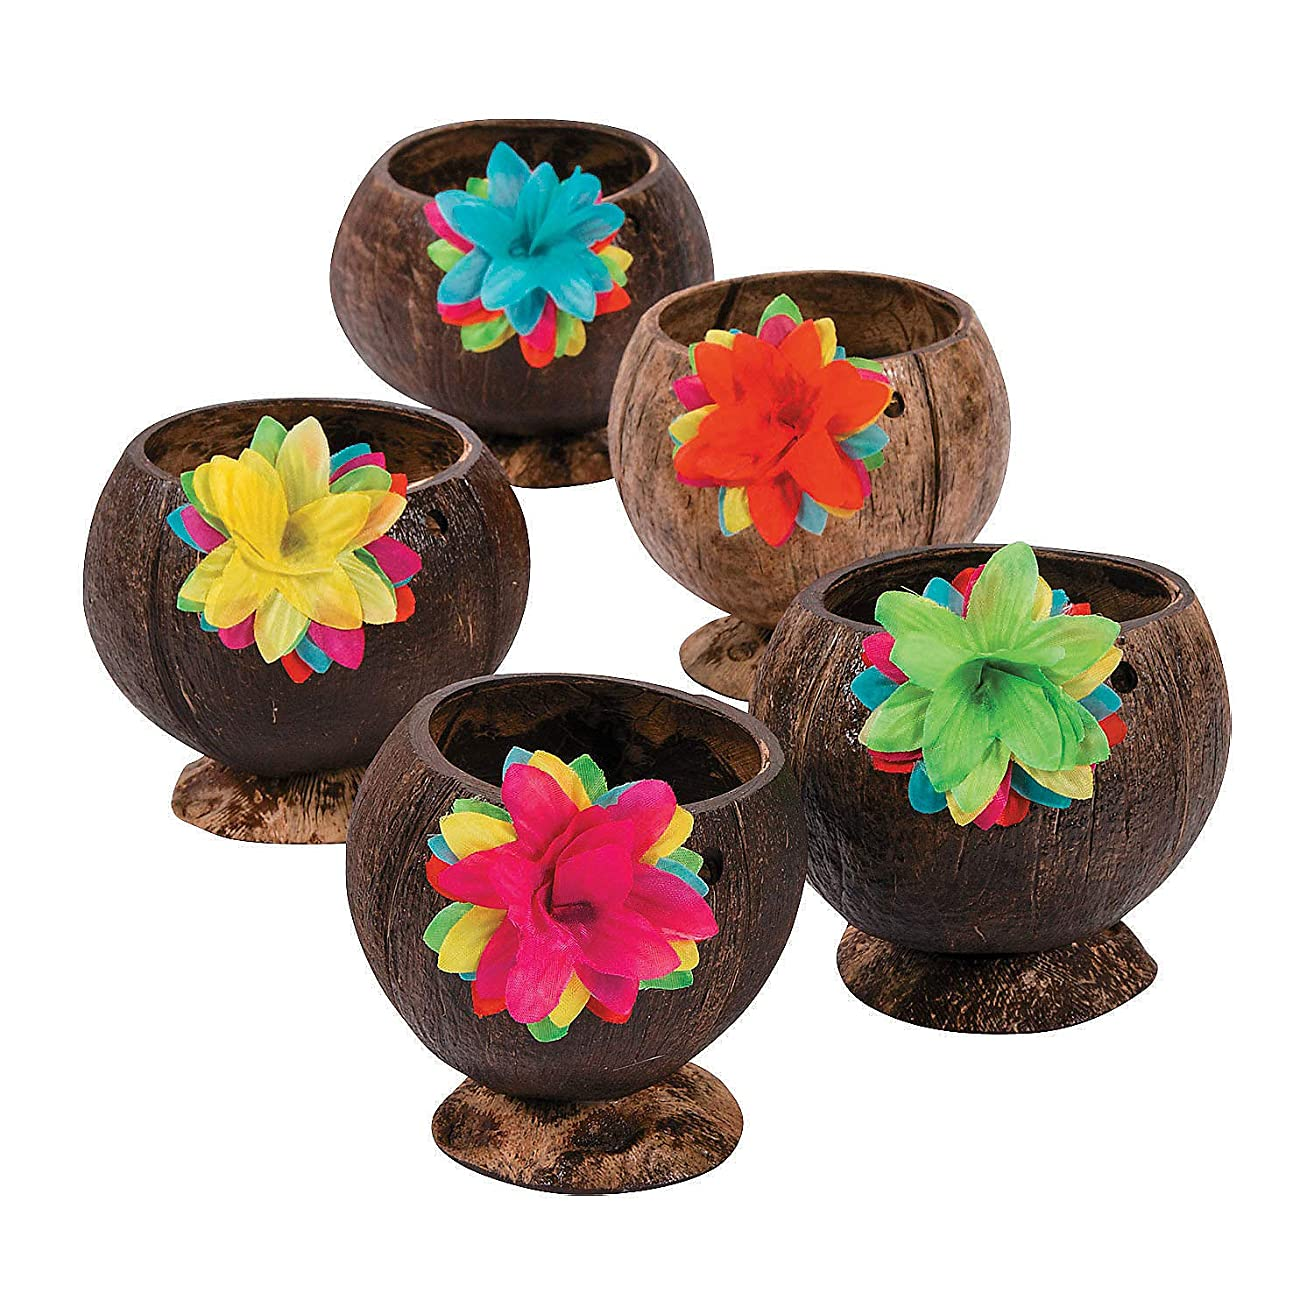 Fun Express - Coconut Cup W/flowers - Party Supplies - Drinkware - Re - Usable Cups - 12 Pieces